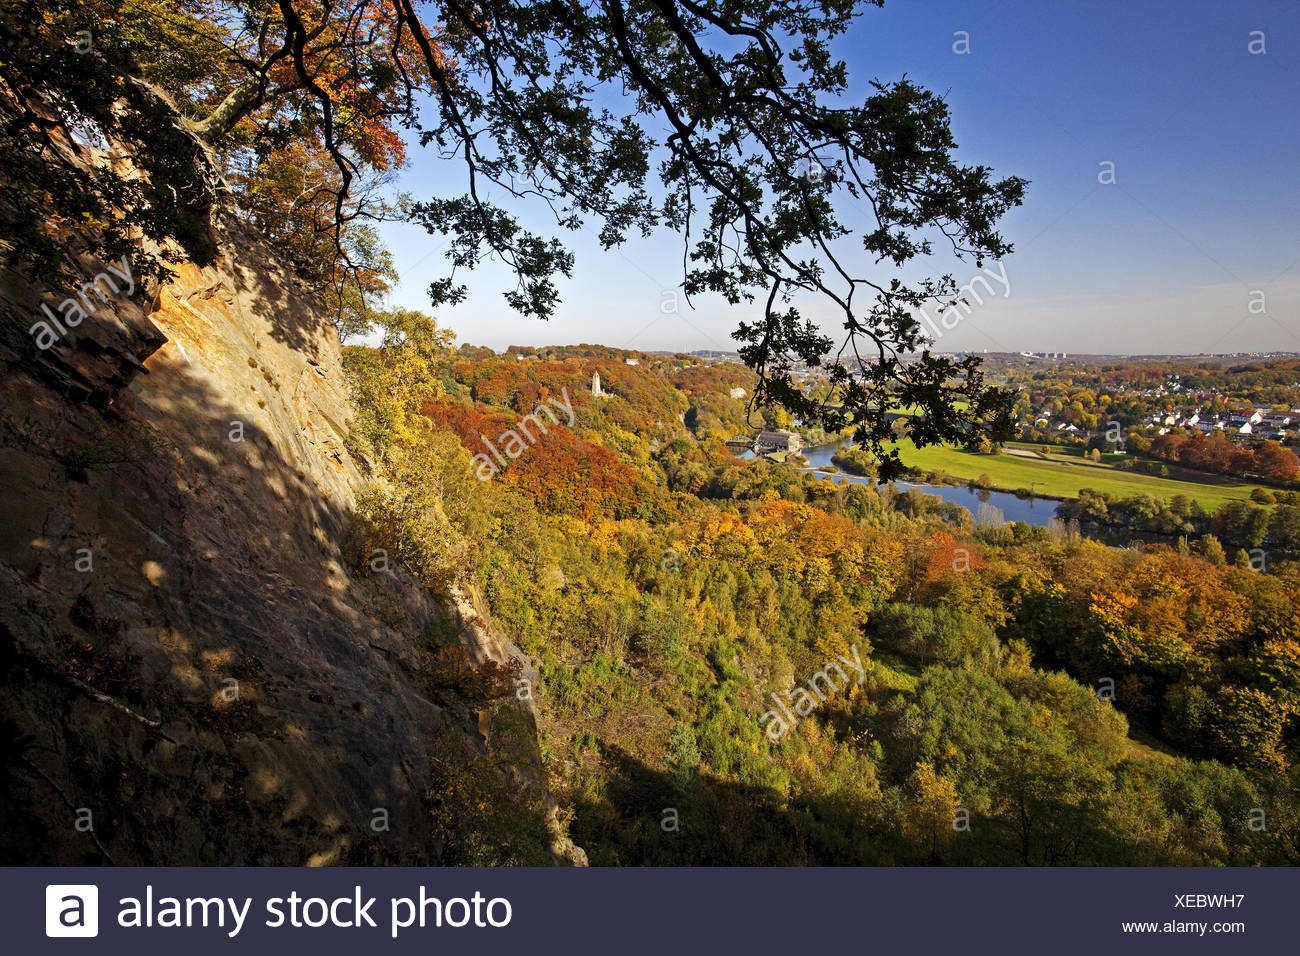 The Ruhr valley in autumn, Witten, Germany - Stock Image